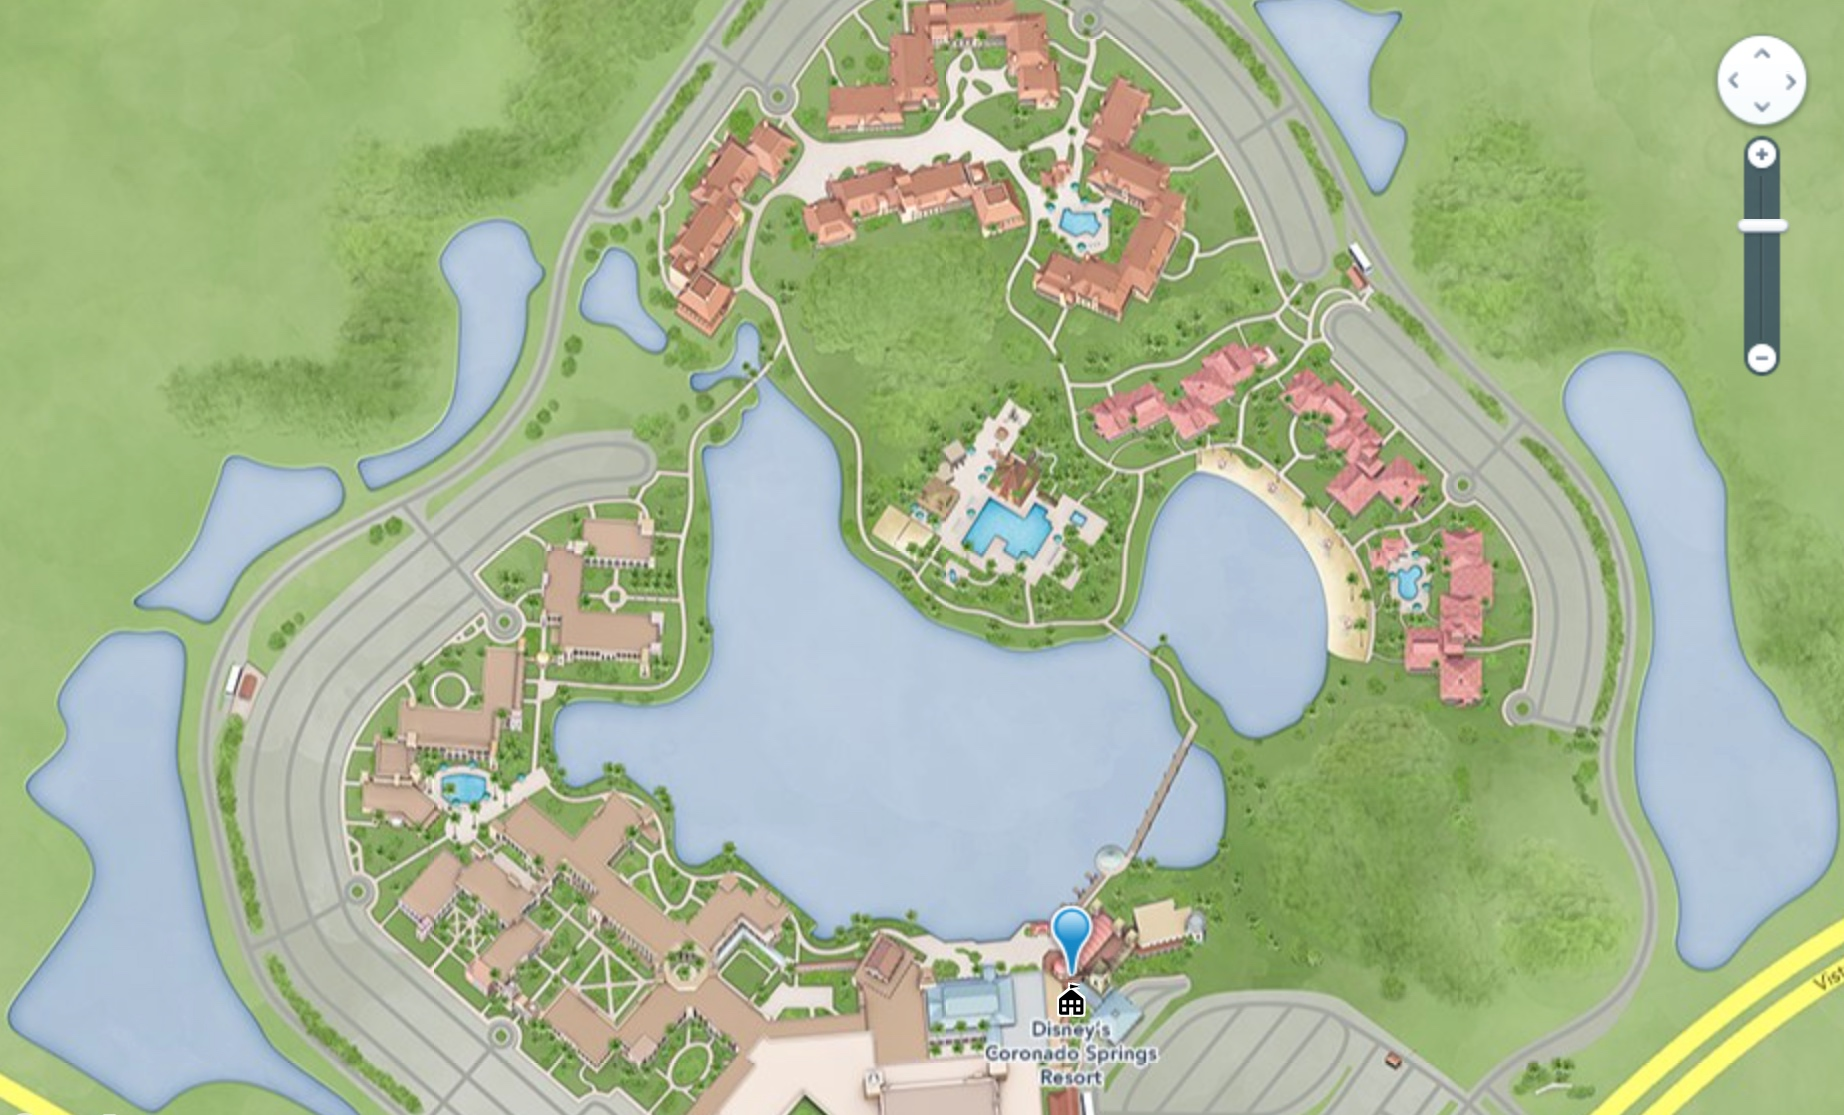 A Disney Moderate Resort Review: Coronado Springs During ... on disney art of animation map, disney grand floridian map, disney shades of green map, disney wilderness lodge map, disney treehouse villas map, disney pop century map, disney florida map, disney fort wilderness map, disney port orleans map, disney california map, disney disneyland map, disney world orlando area map, disney polynesian map, walt disney world satellite map, disney blizzard beach map, walt disney world speedway map, disney epcot map, coronado national forest map, disney beach club villas map, disney boardwalk inn map,